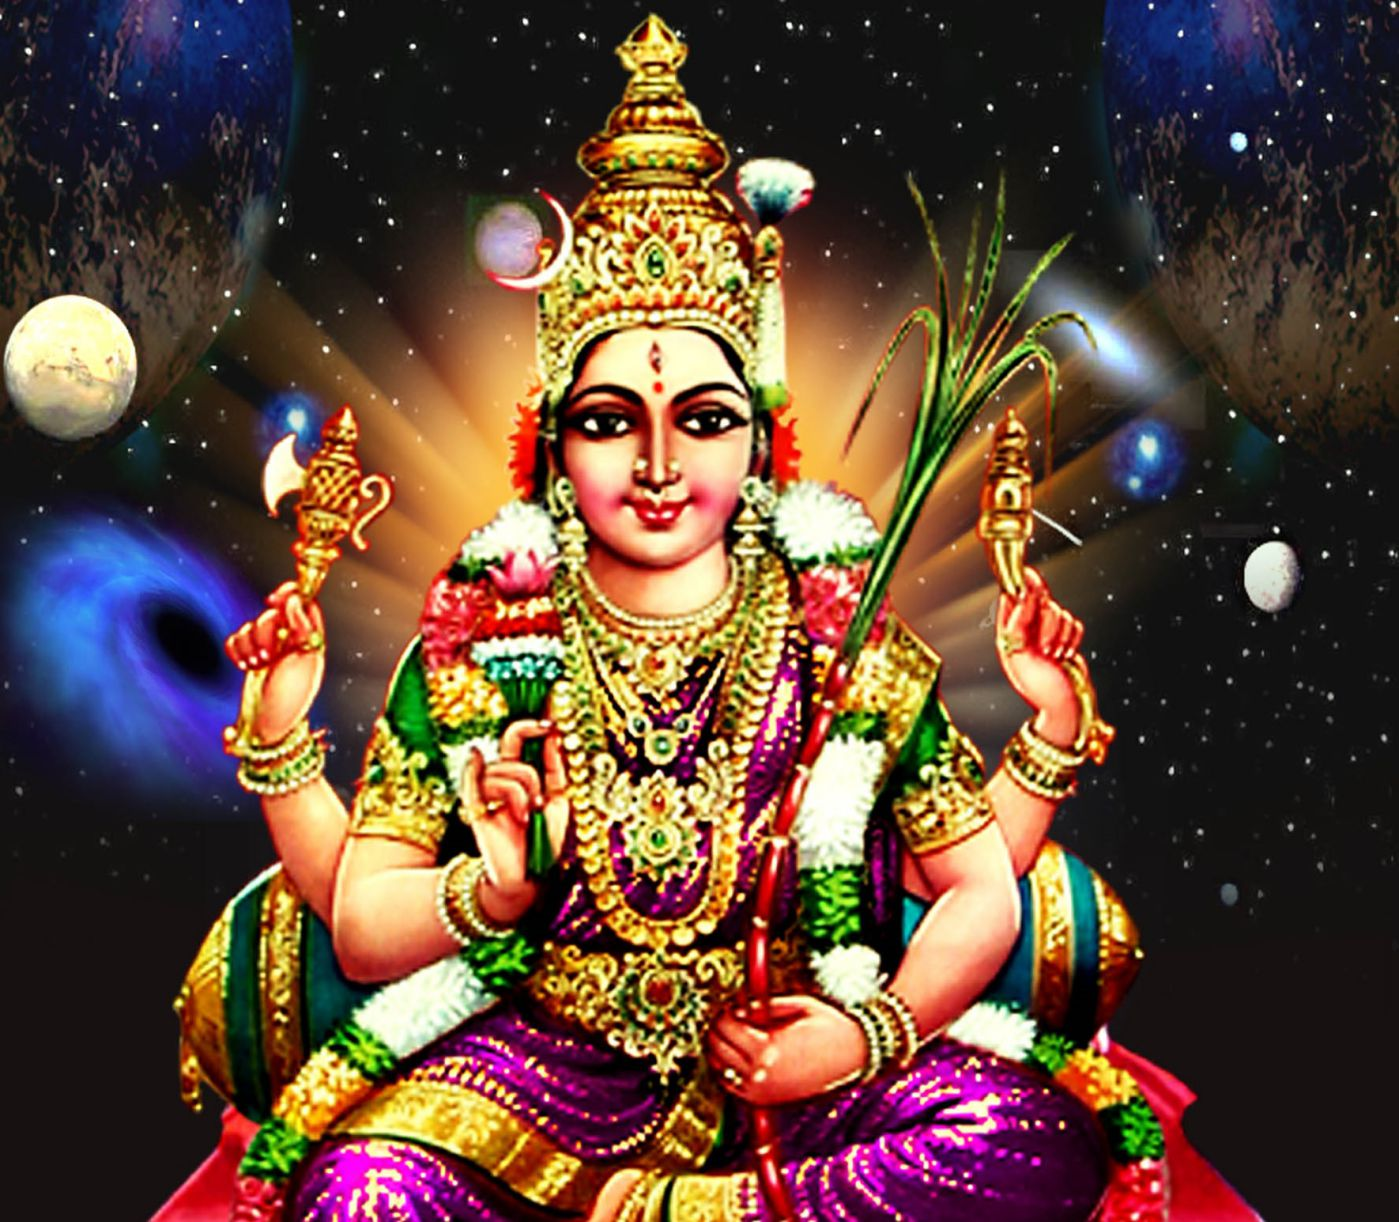 Sri Lalitha Sahasranamam - 1000 Names of Lalitha Devi from